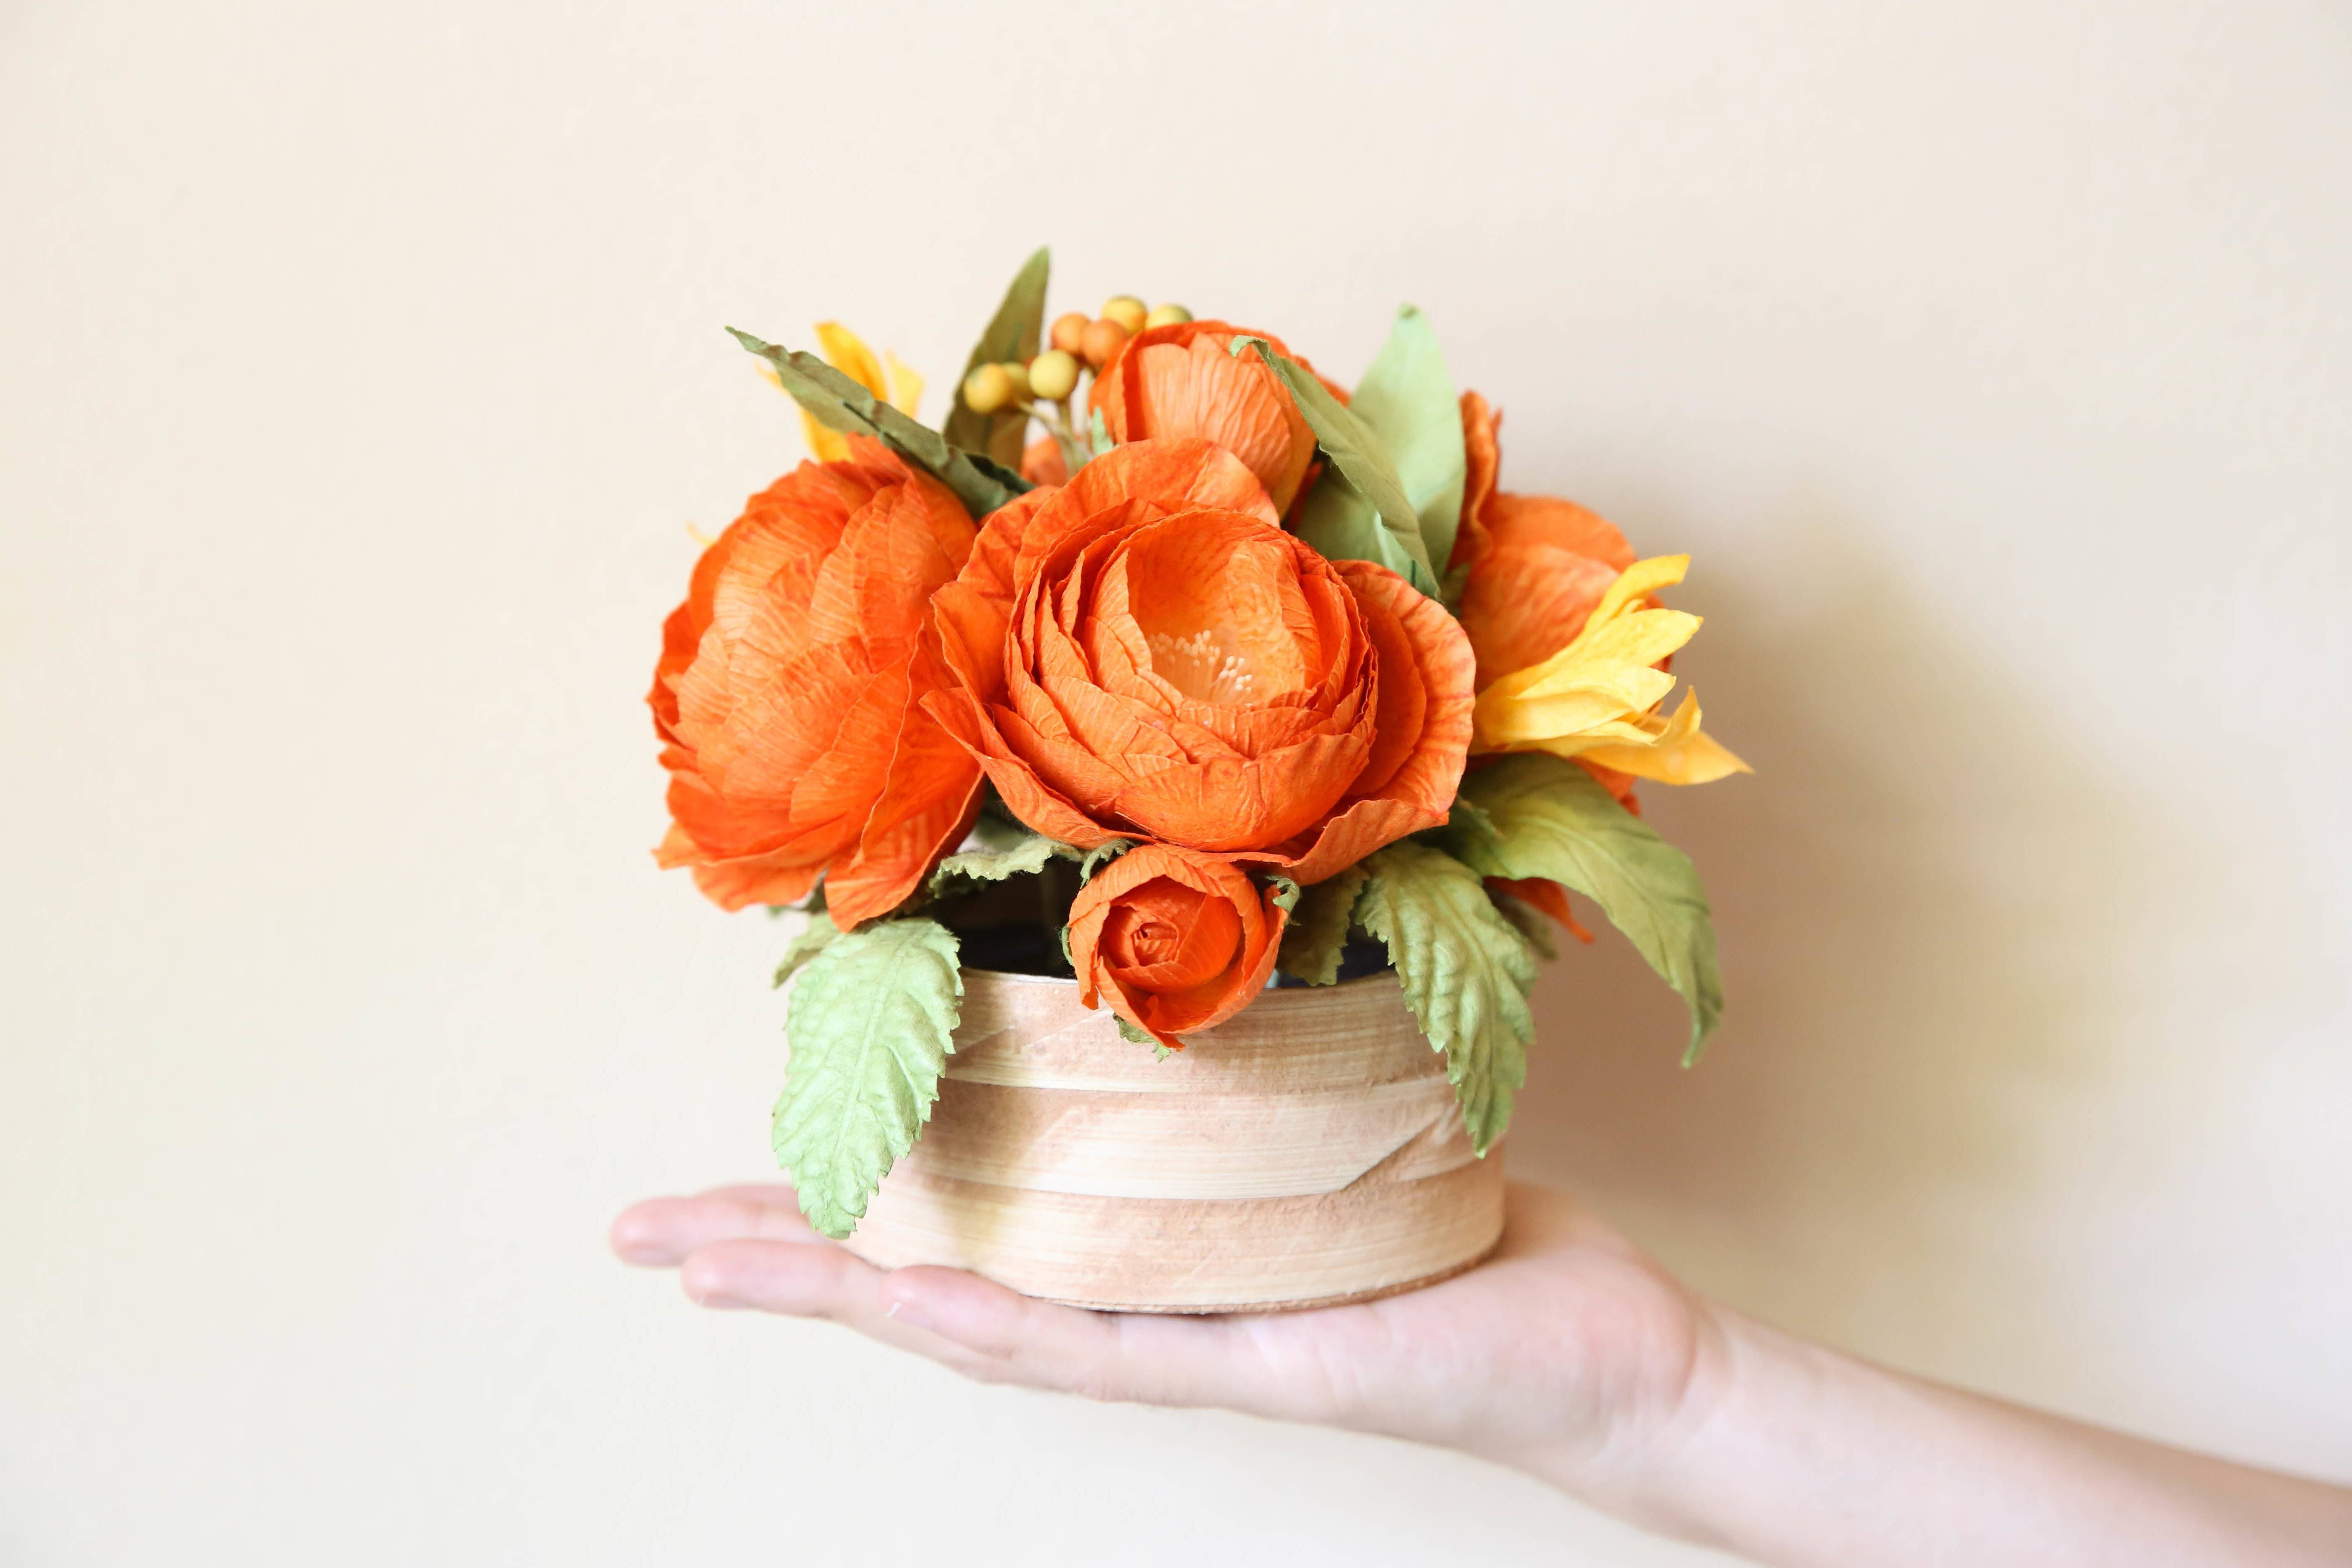 Crafting instructions for the wedding: flowers made of crepe paper